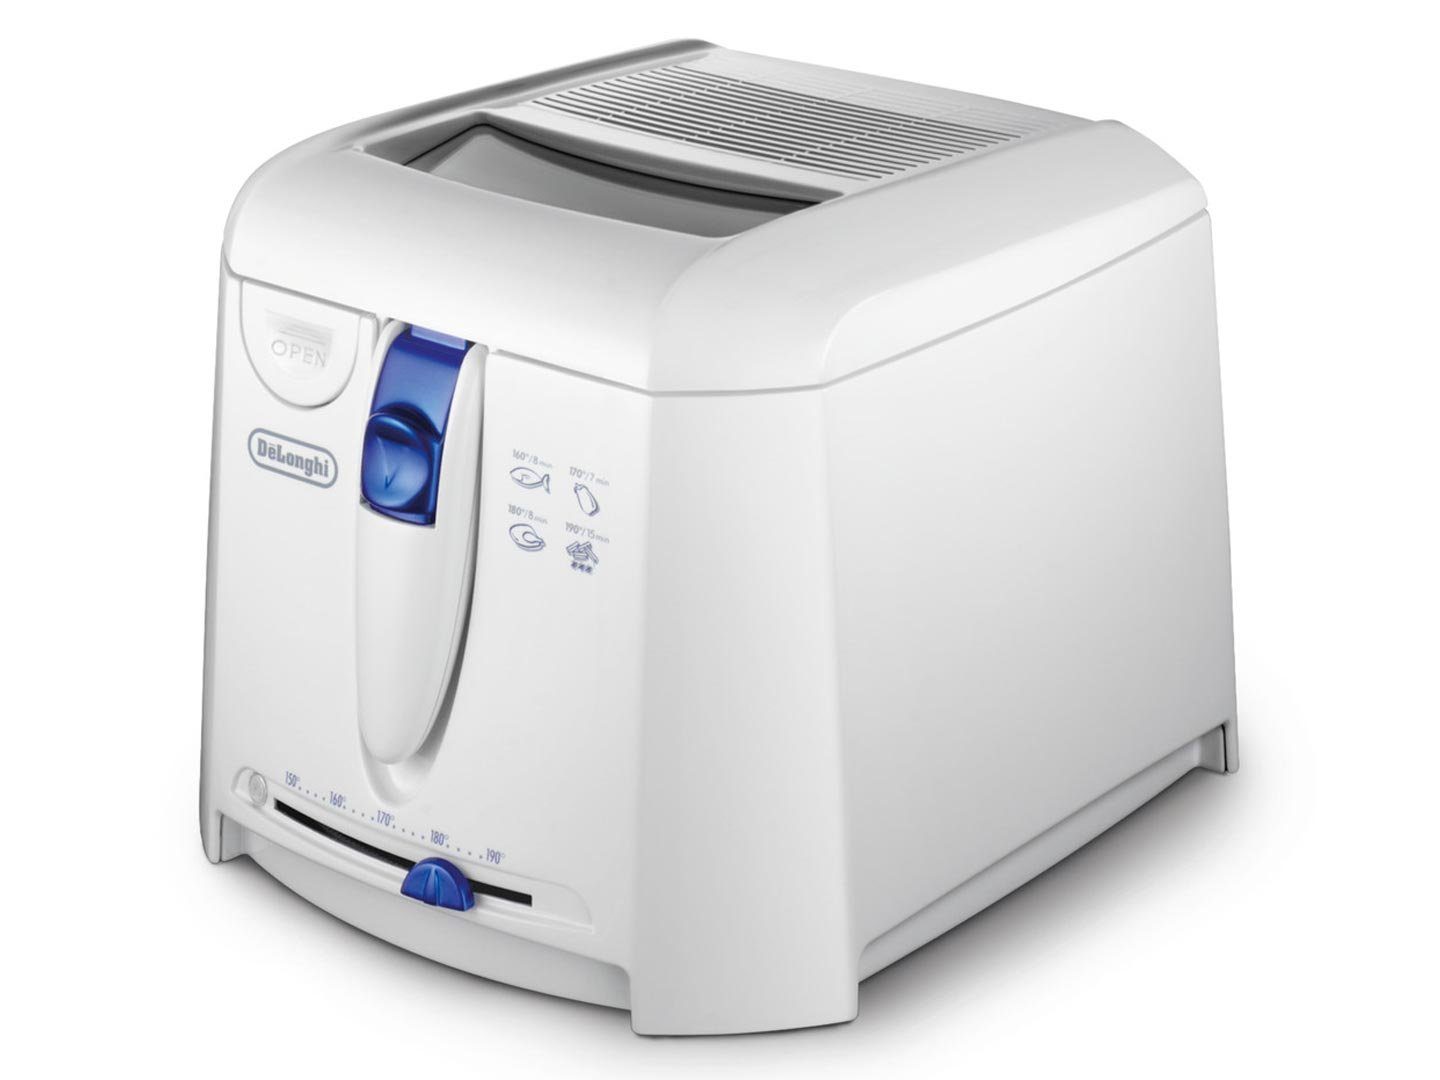 DeLonghi F Blanco x x mm g  V  Hz Freidora